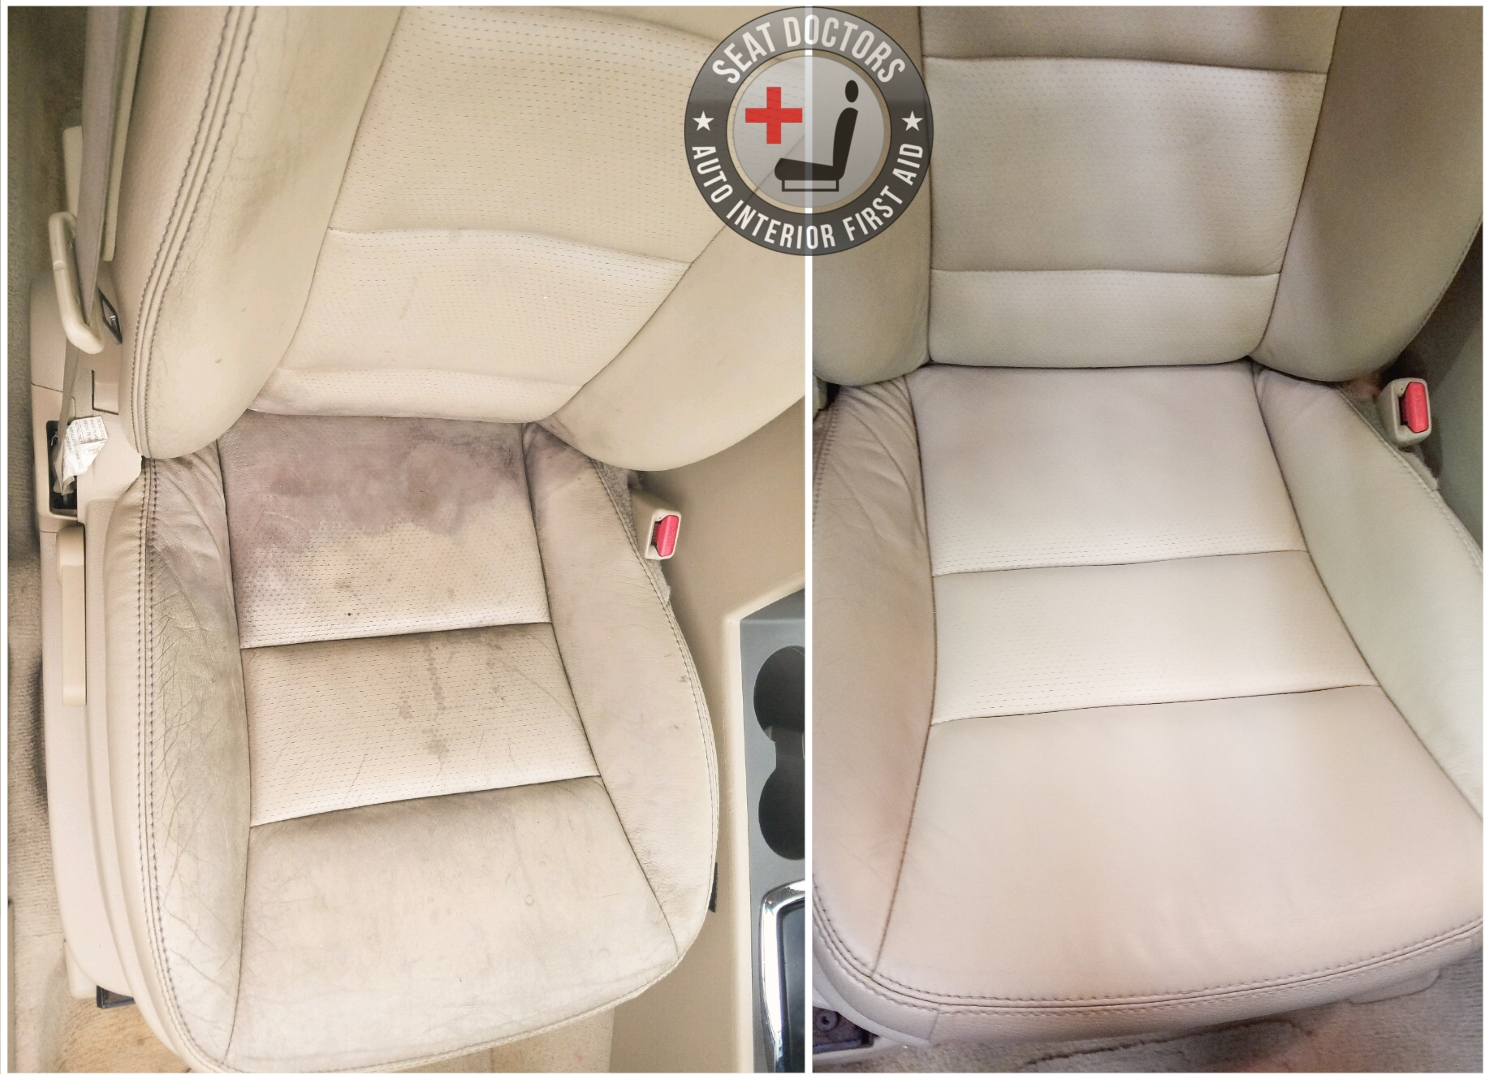 Leather Dye Restoration -- 2008 Ford Fusion Passenger Seat